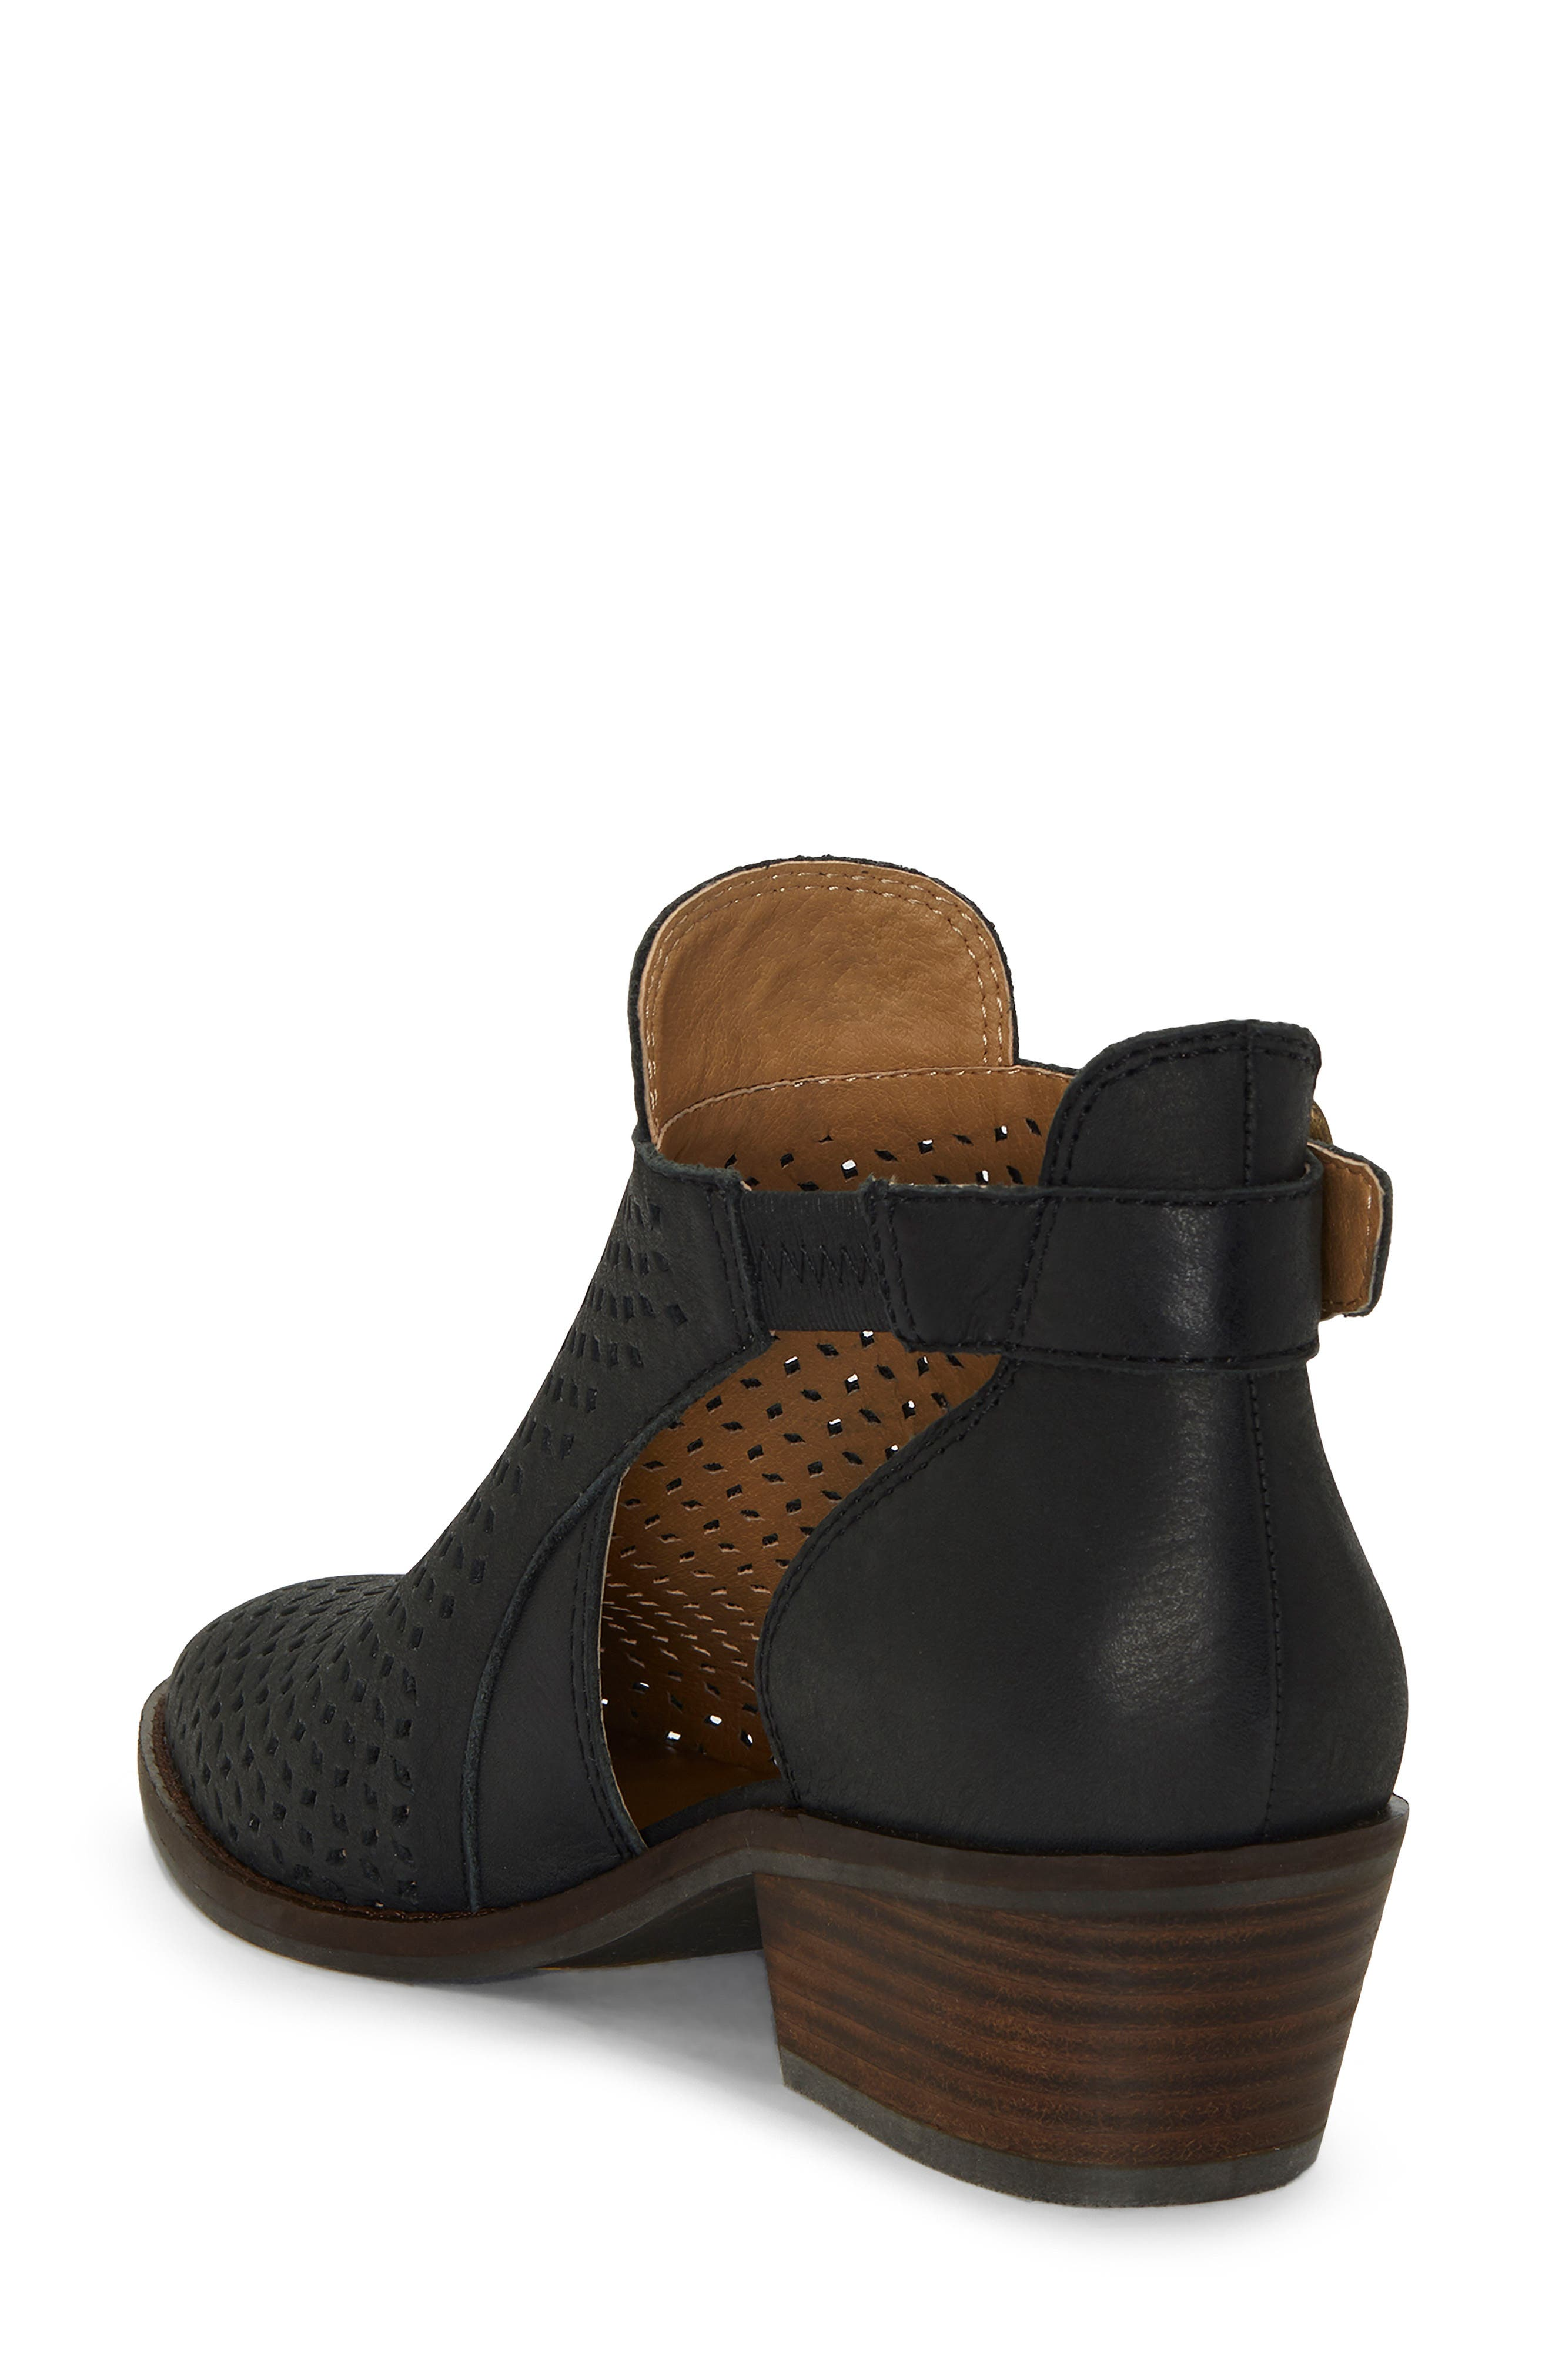 Fillian Bootie,                             Alternate thumbnail 2, color,                             BLACK LEATHER